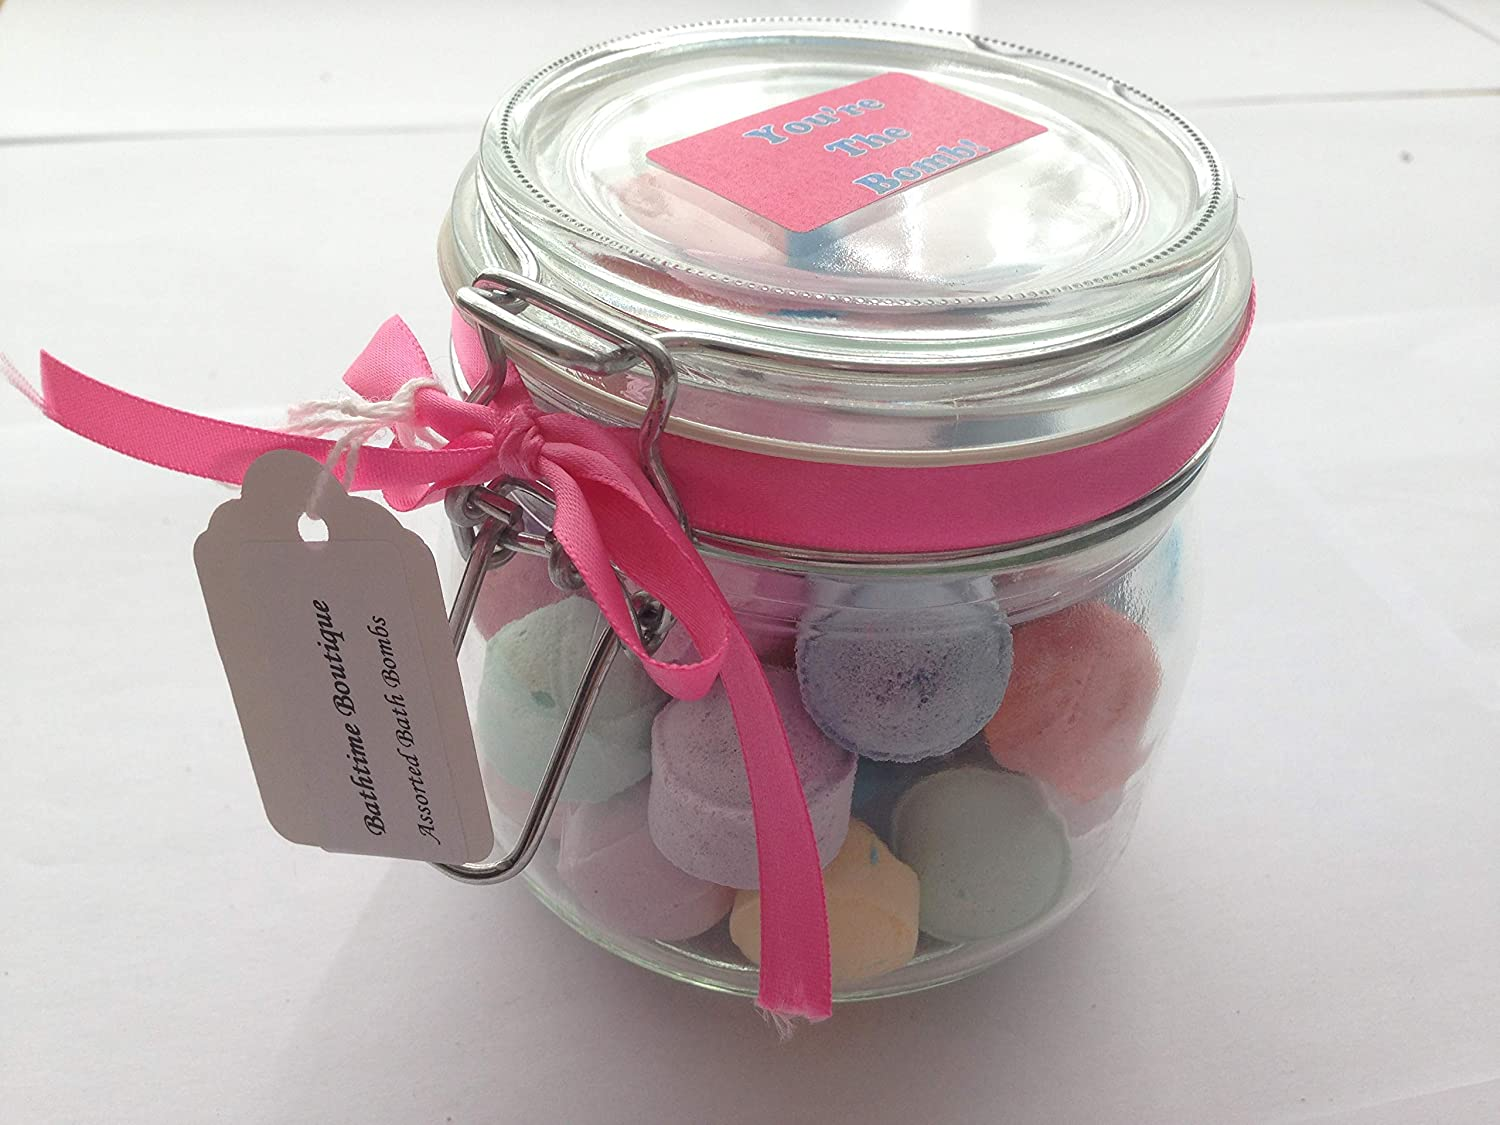 Bathtime Boutique - Chill Pill, Mini Marble Bath Bomb Gift Set Jars. Assorted colours. Perfect christmas, birthday gifts Bathtime Boutique Ltd